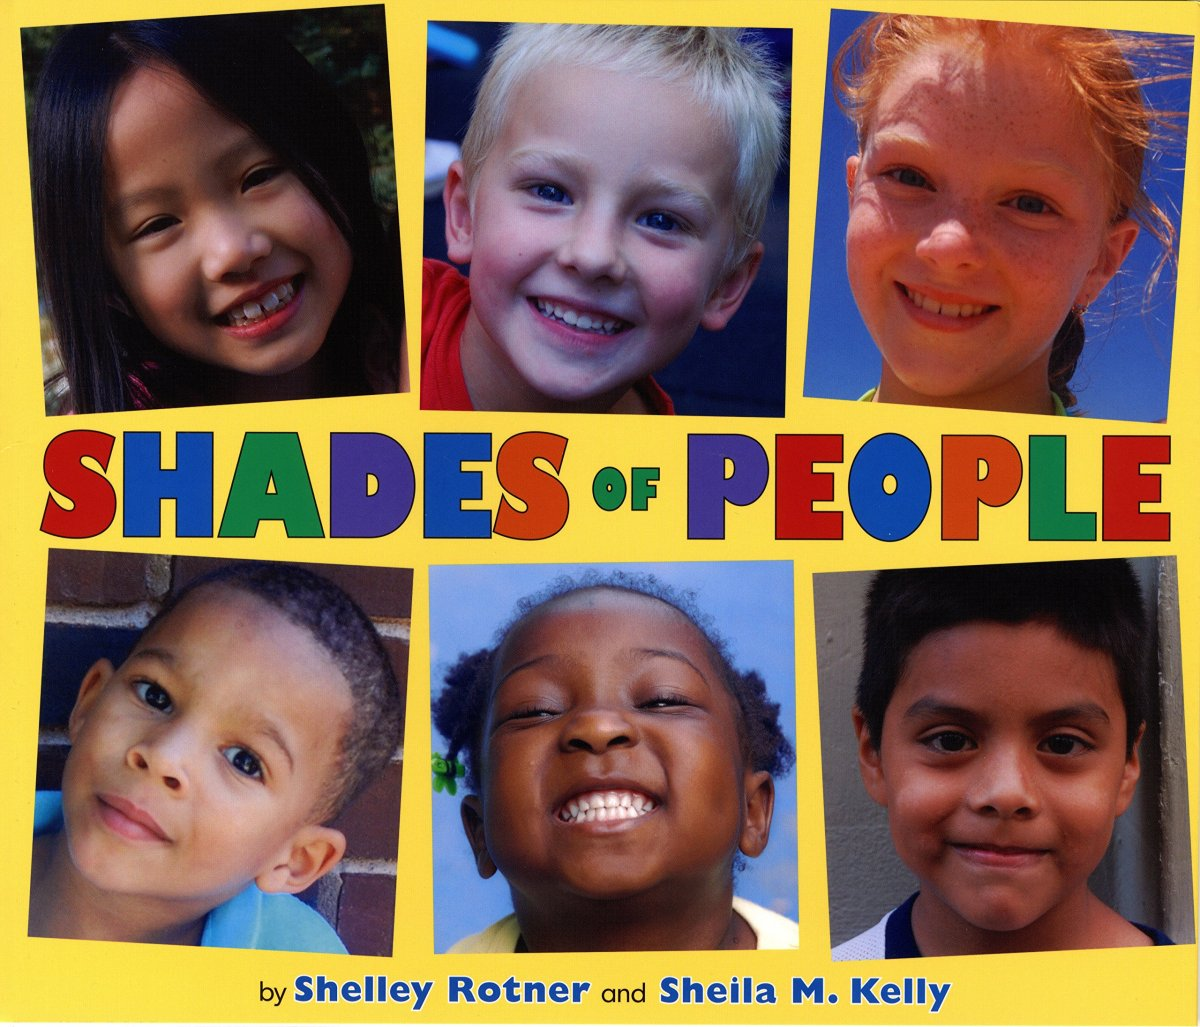 shades of people cover image